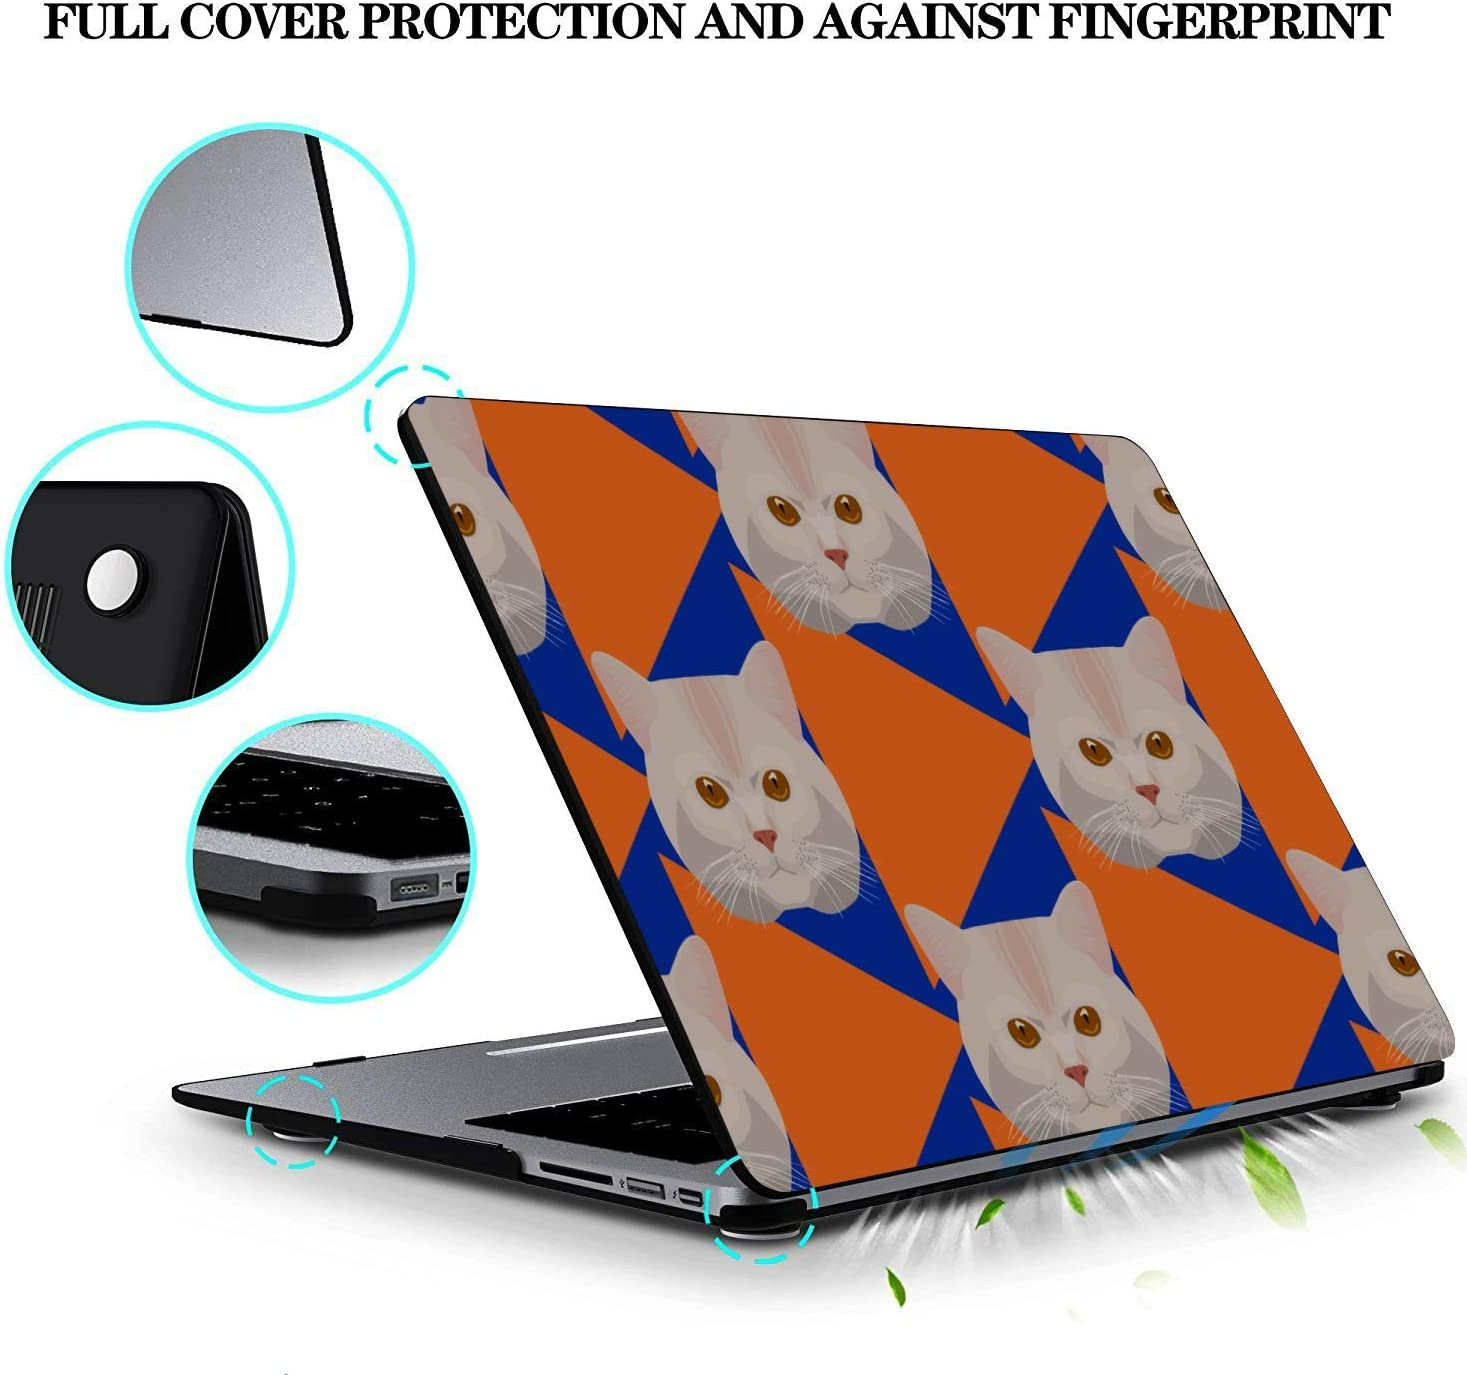 MacBook Pro Laptop Cover Serious Creative Fashion Painting Plastic Hard Shell Compatible Mac Air 11 Pro 13 15 MacBook Air Laptop Case Protection for MacBook 2016-2019 Version